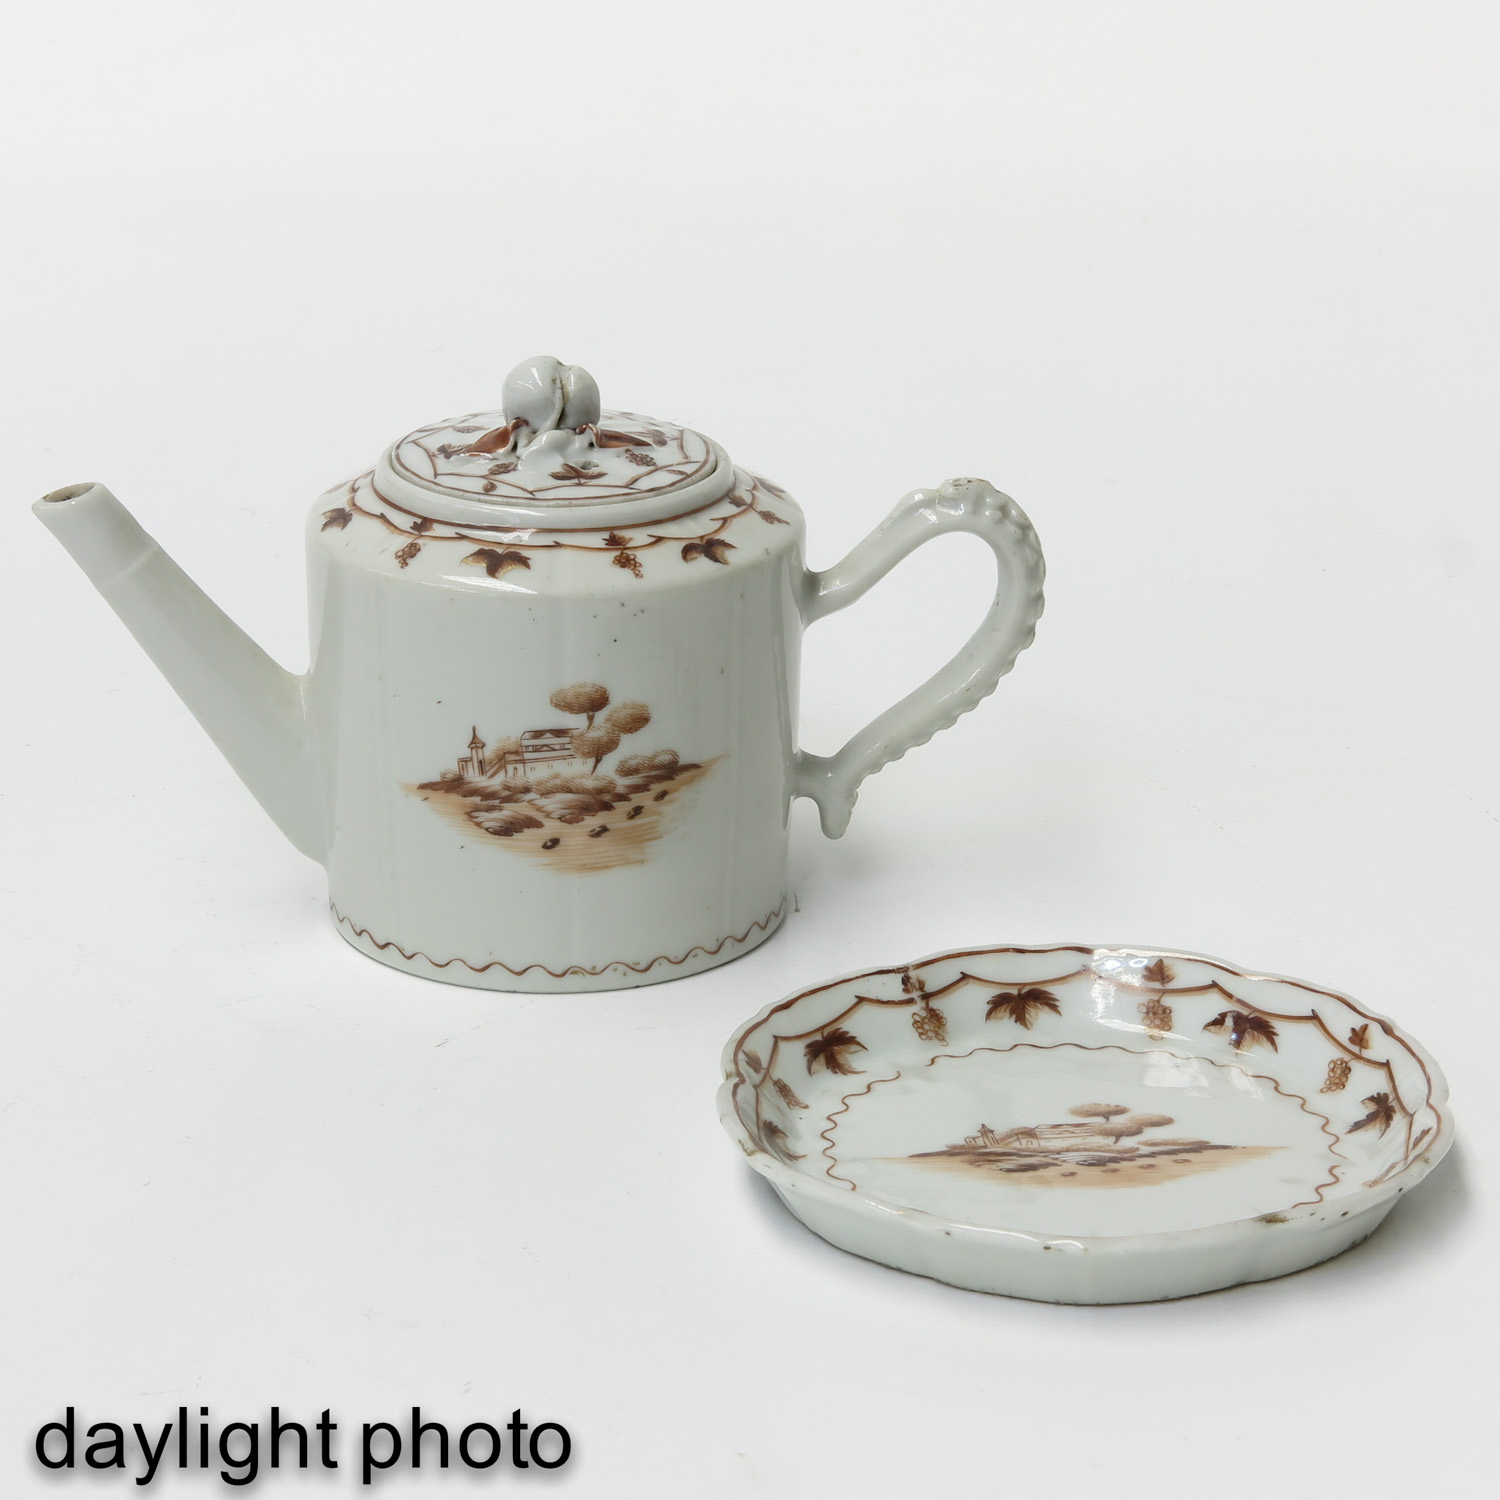 A Teapot and Small Dish - Image 7 of 9